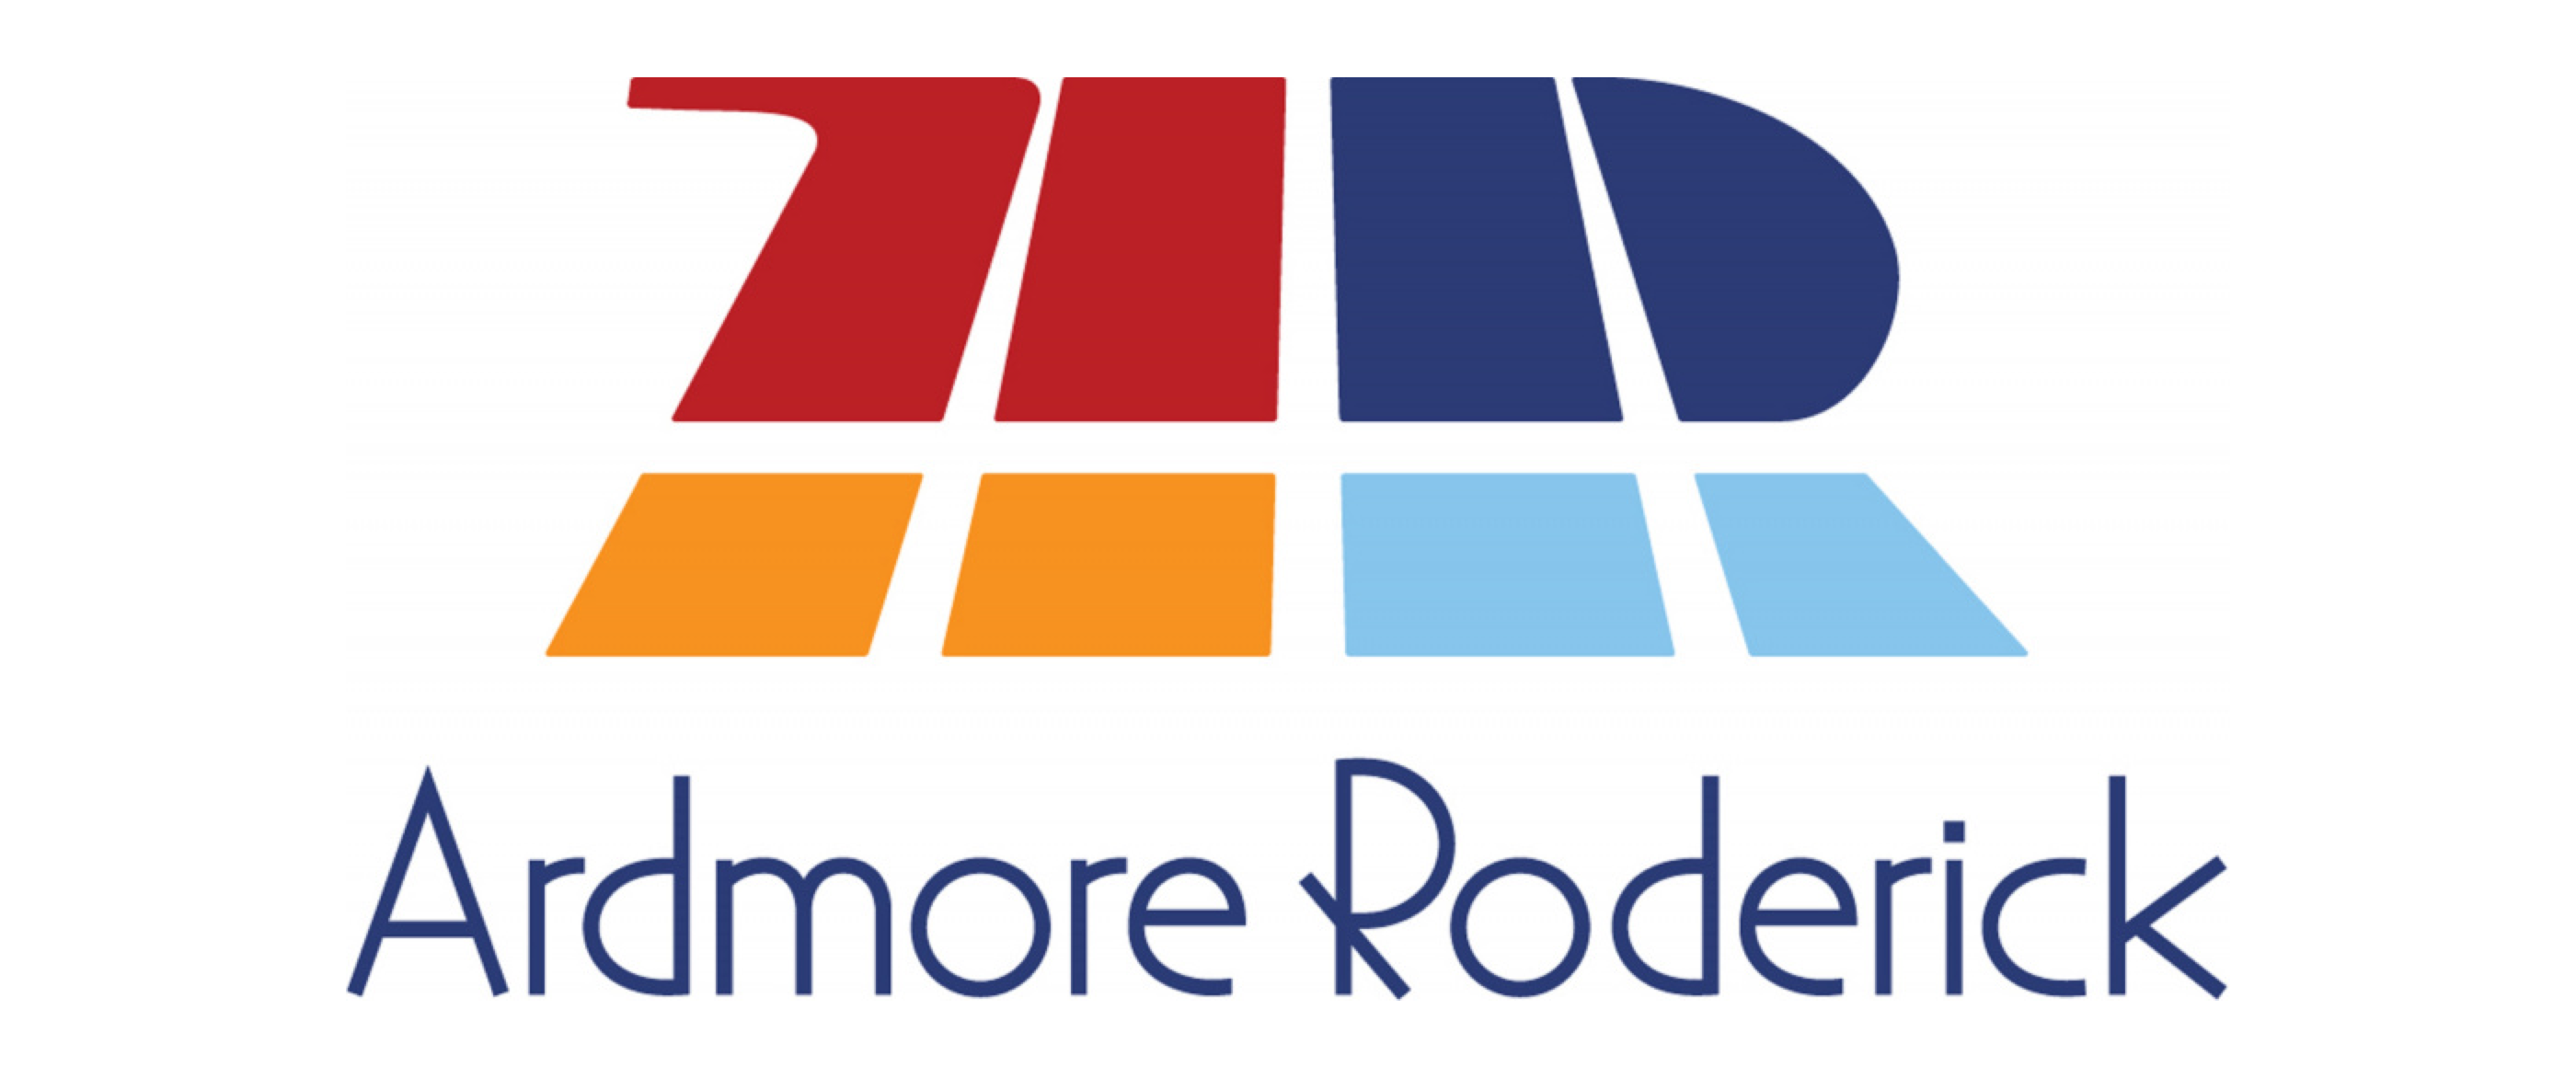 Illinois State Toll Highway Authority Selects Ardmore Roderick for Facilities Construction Management